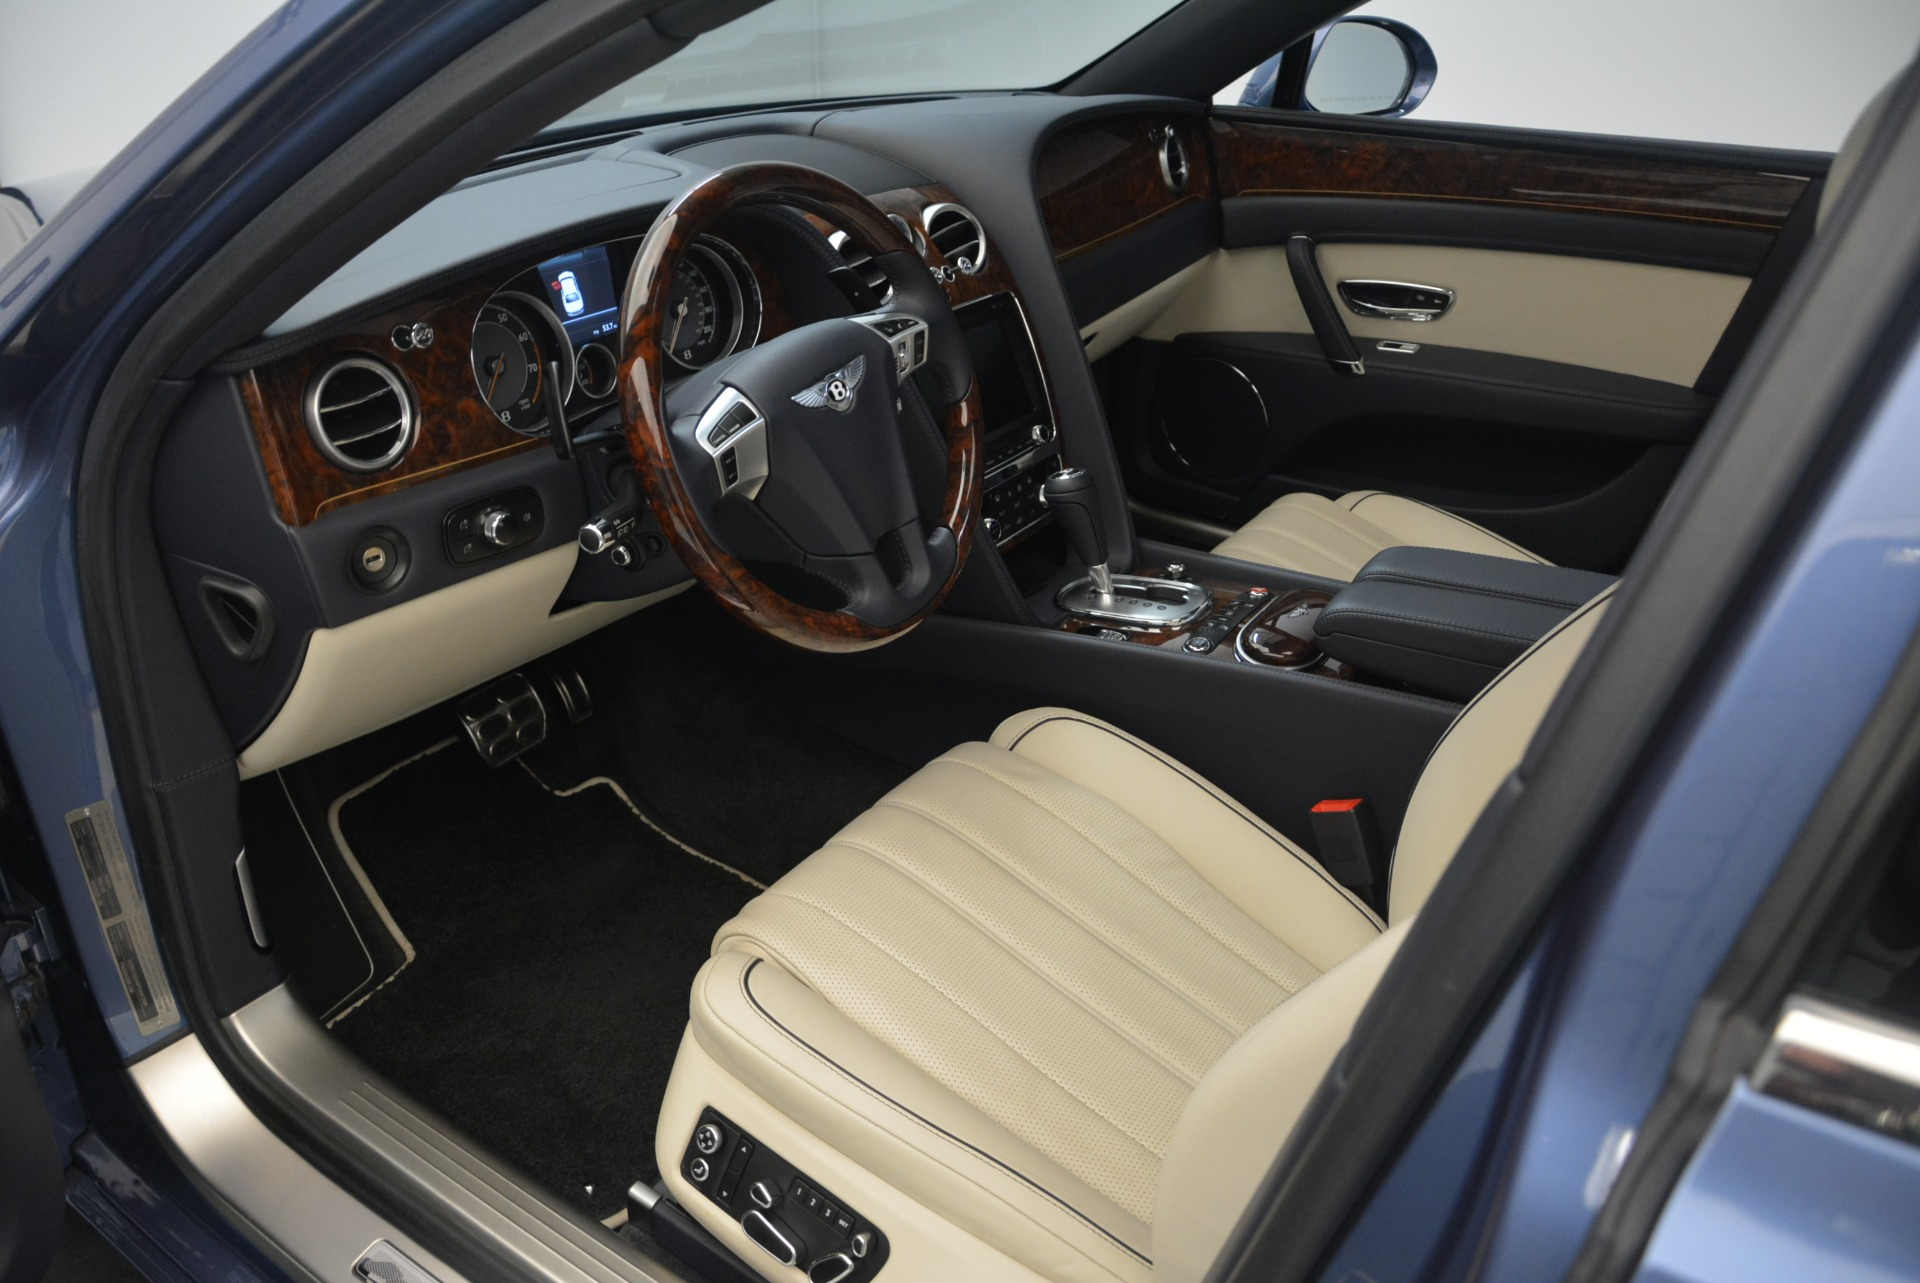 Used 2015 Bentley Flying Spur W12 For Sale In Westport, CT 2339_p19